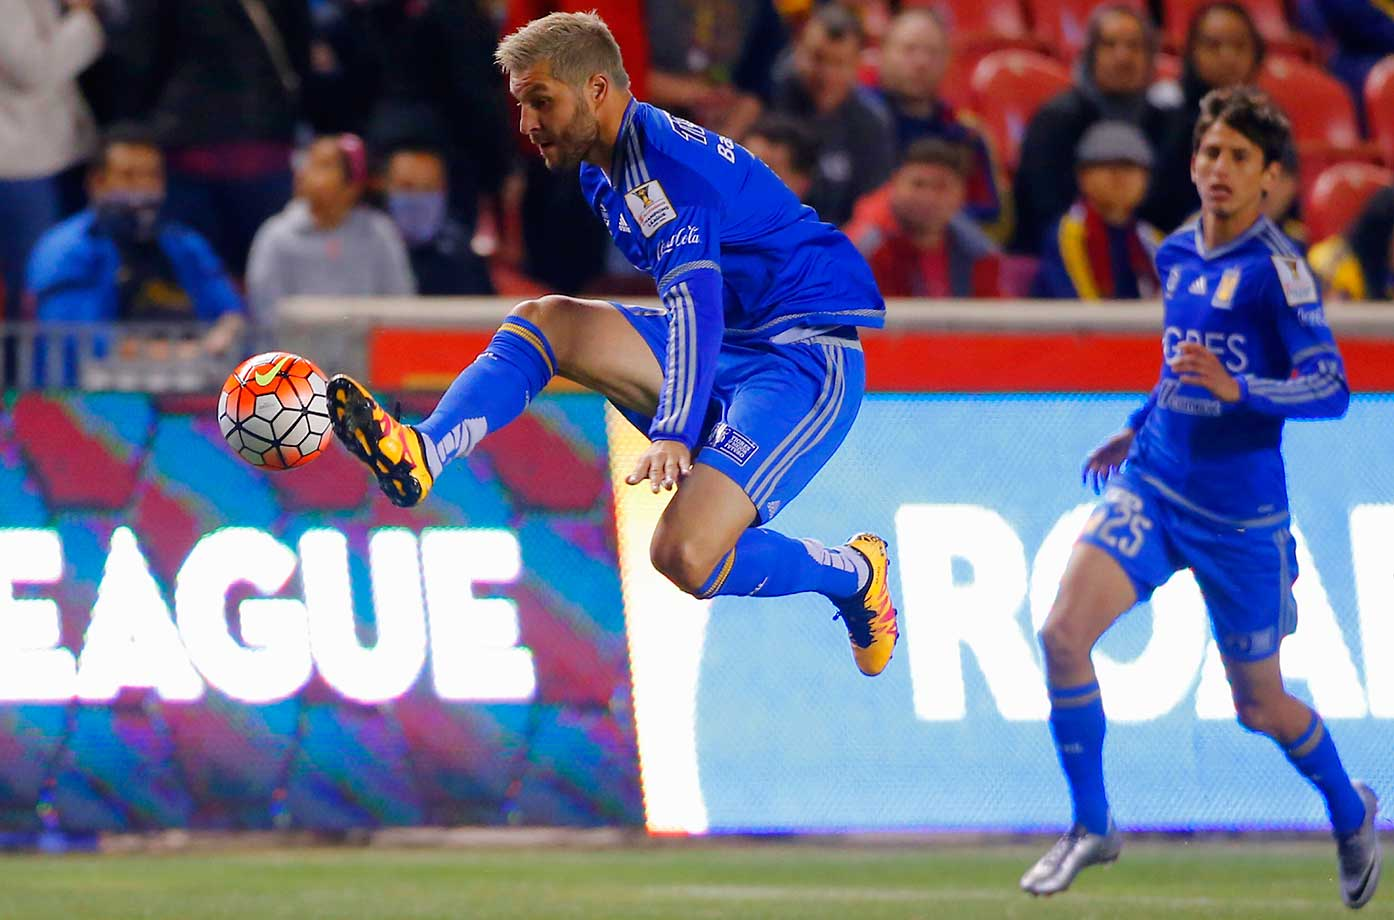 Andre Gignac of Tigres controls the ball during a match against Real Salt Lake in the CONCACAF Championship League.